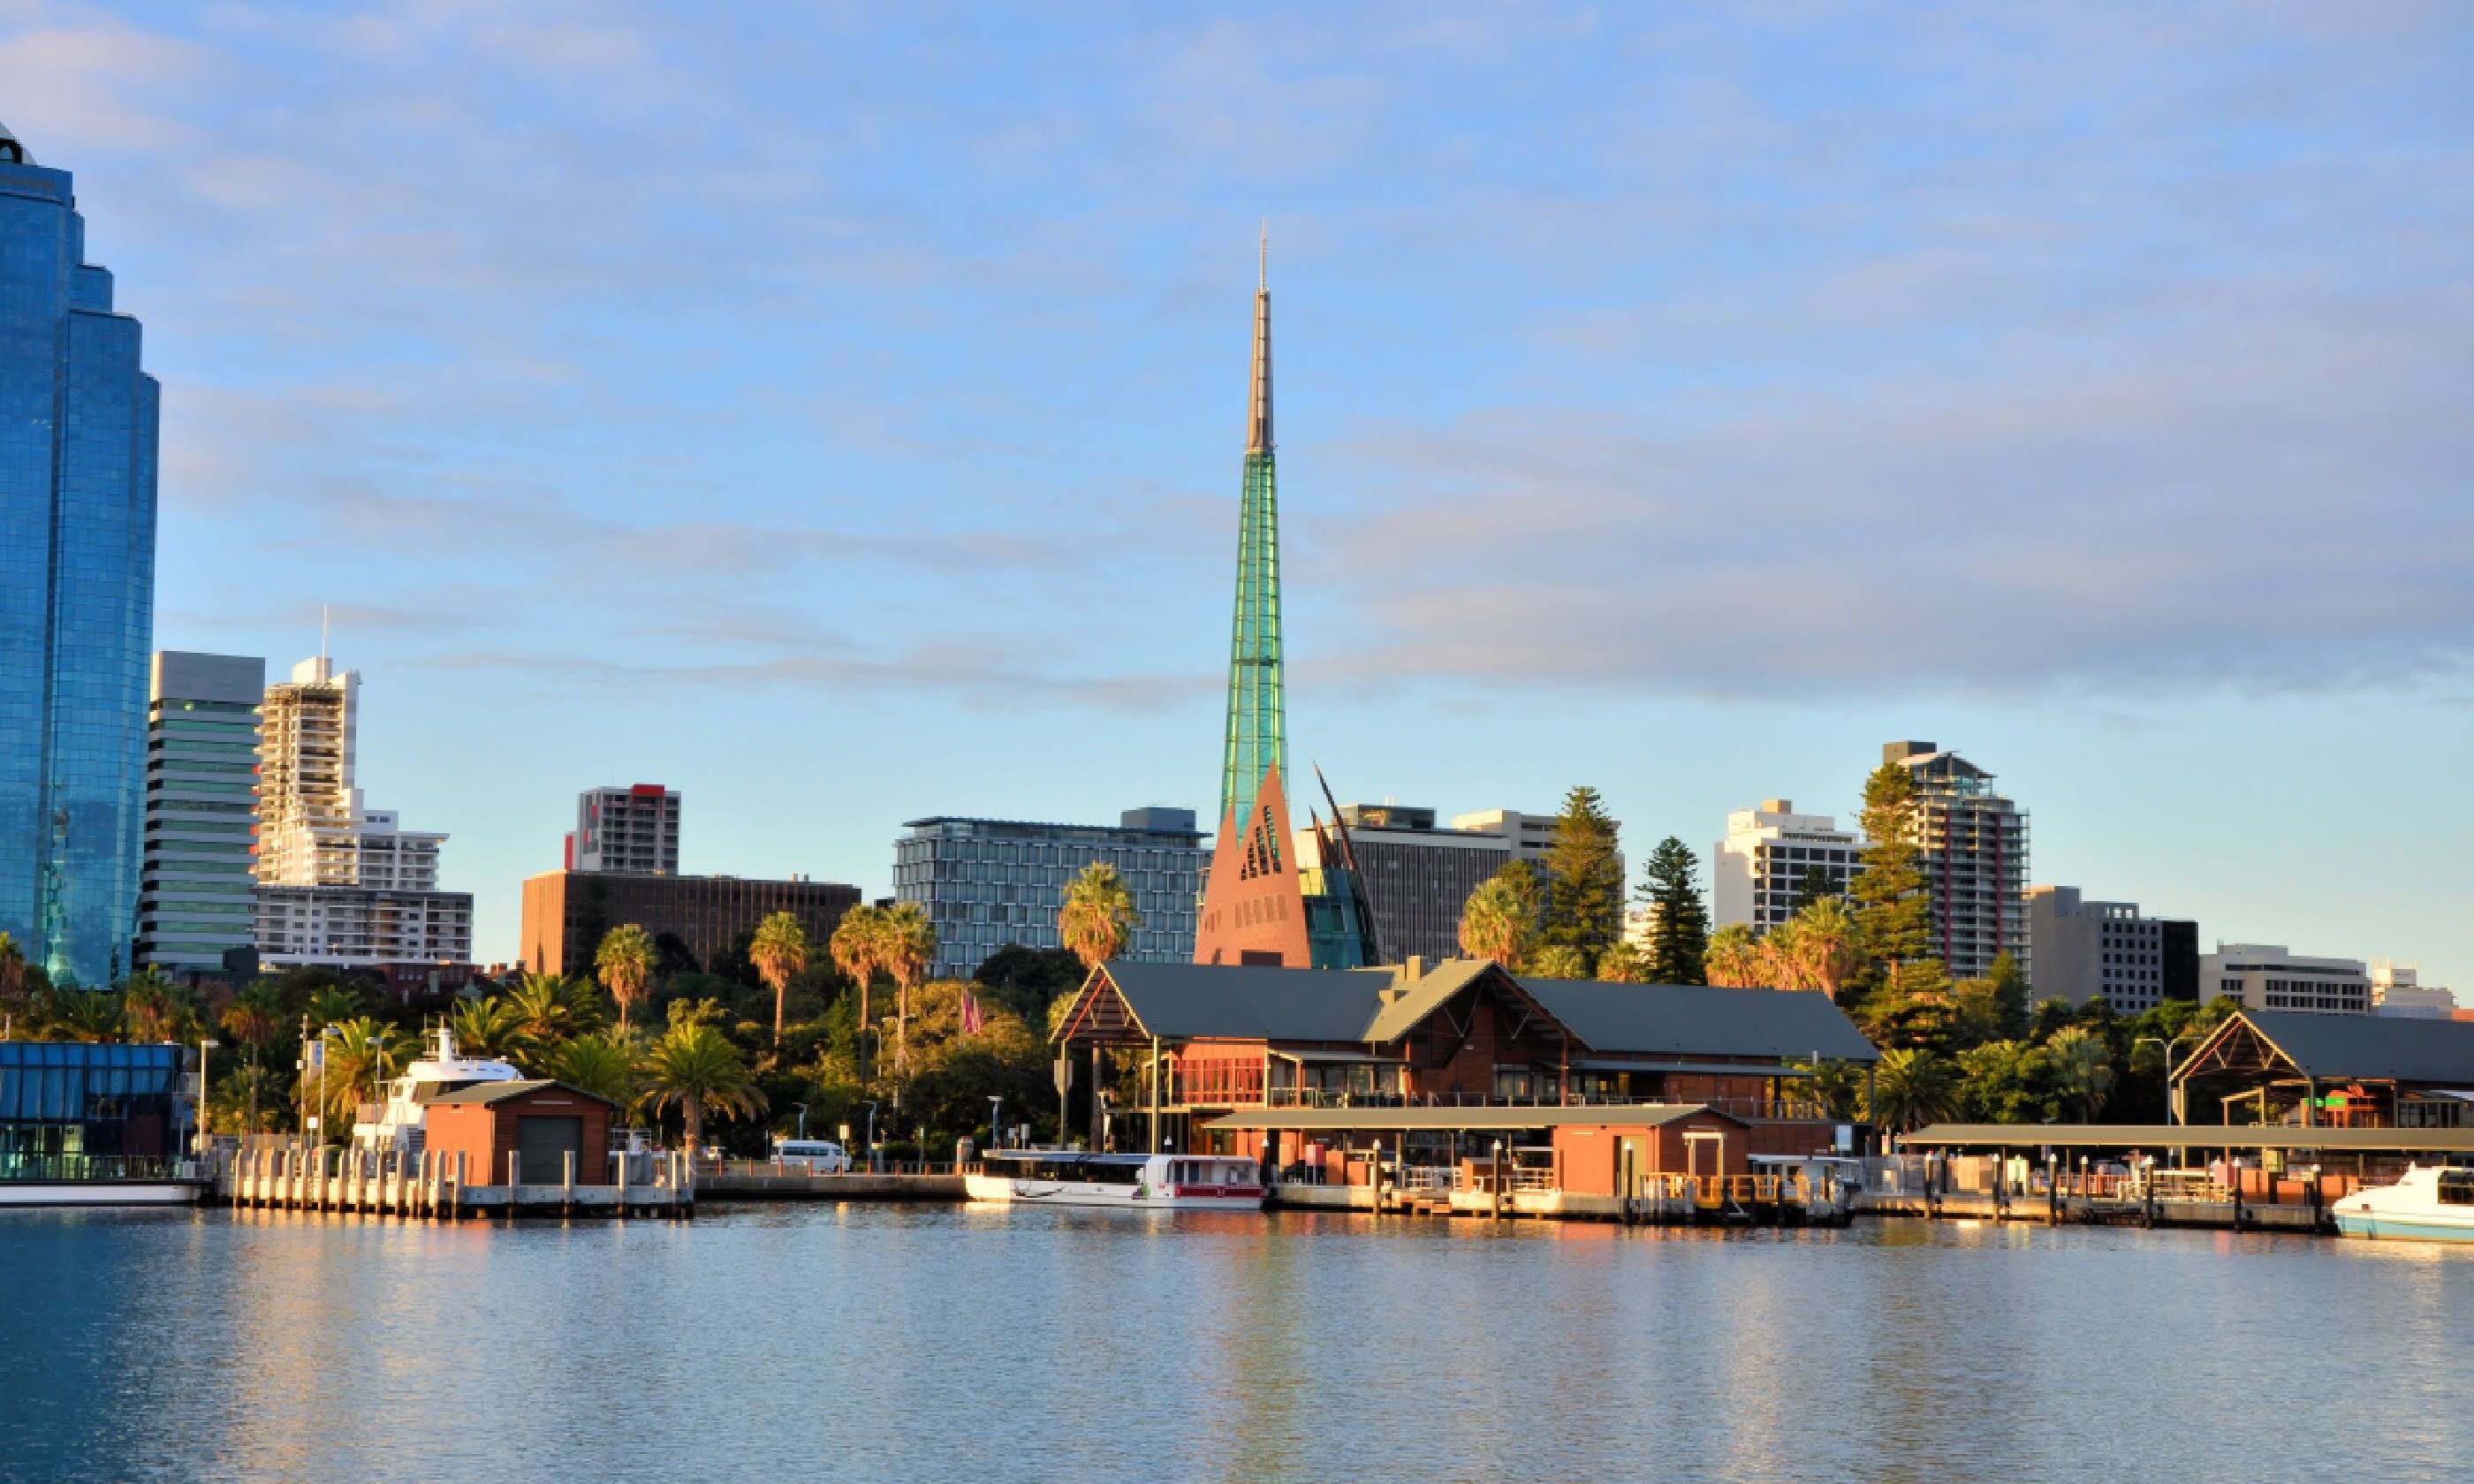 View of Perth City Centre from Swan River (Shutterstock)